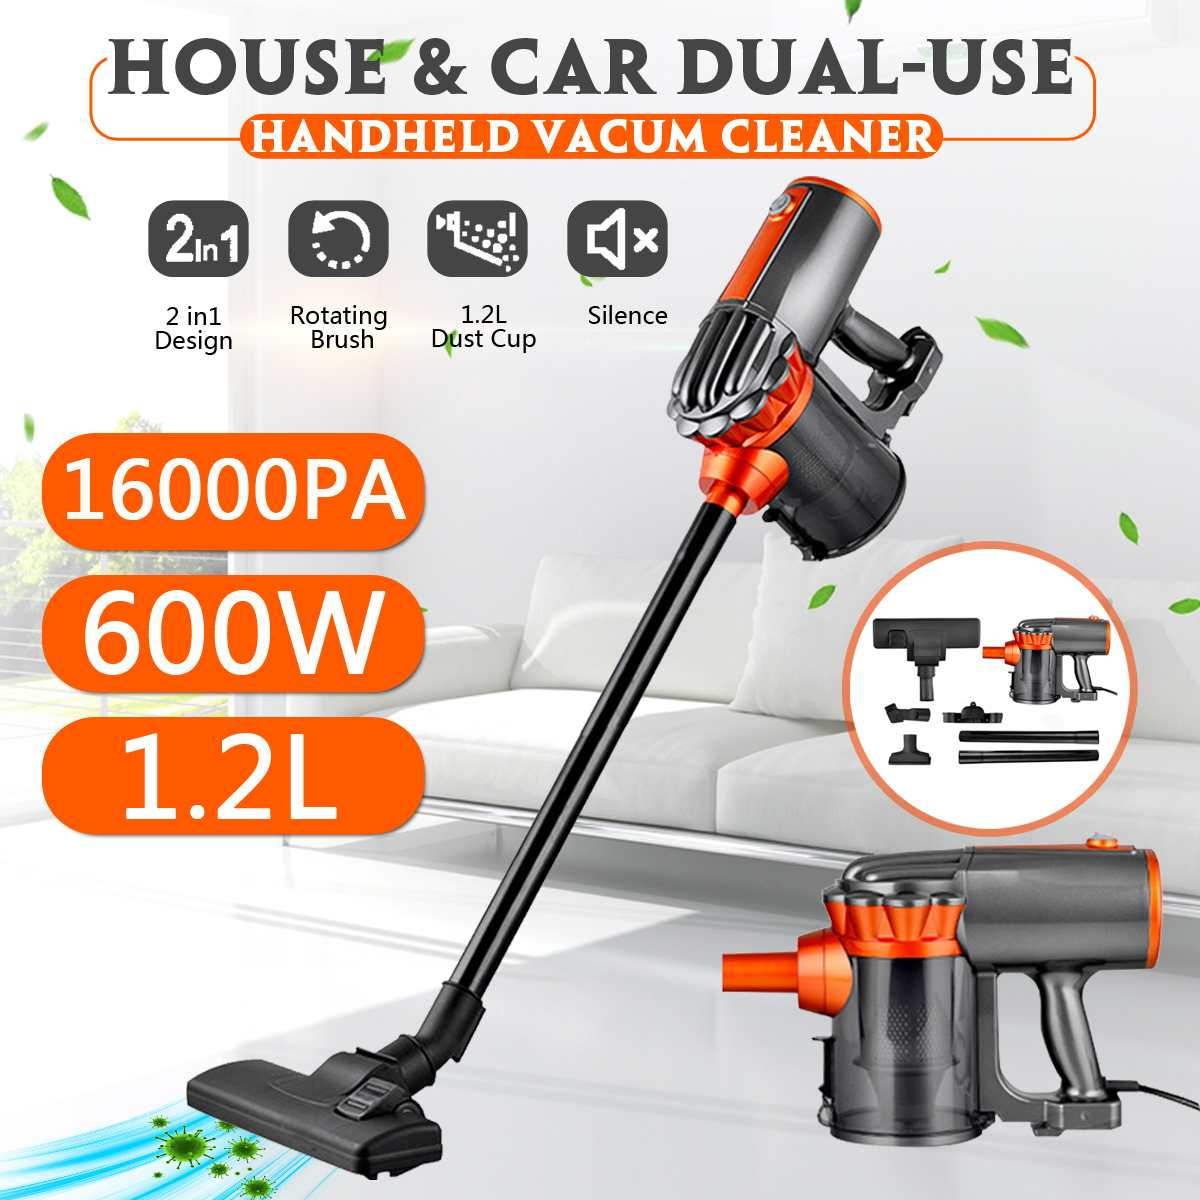 600W 220V Vacuum Cleaner Portable Household Low Noise Vacuum Cleaner Handheld Dust Collector Aspirator Vacum Cleaner